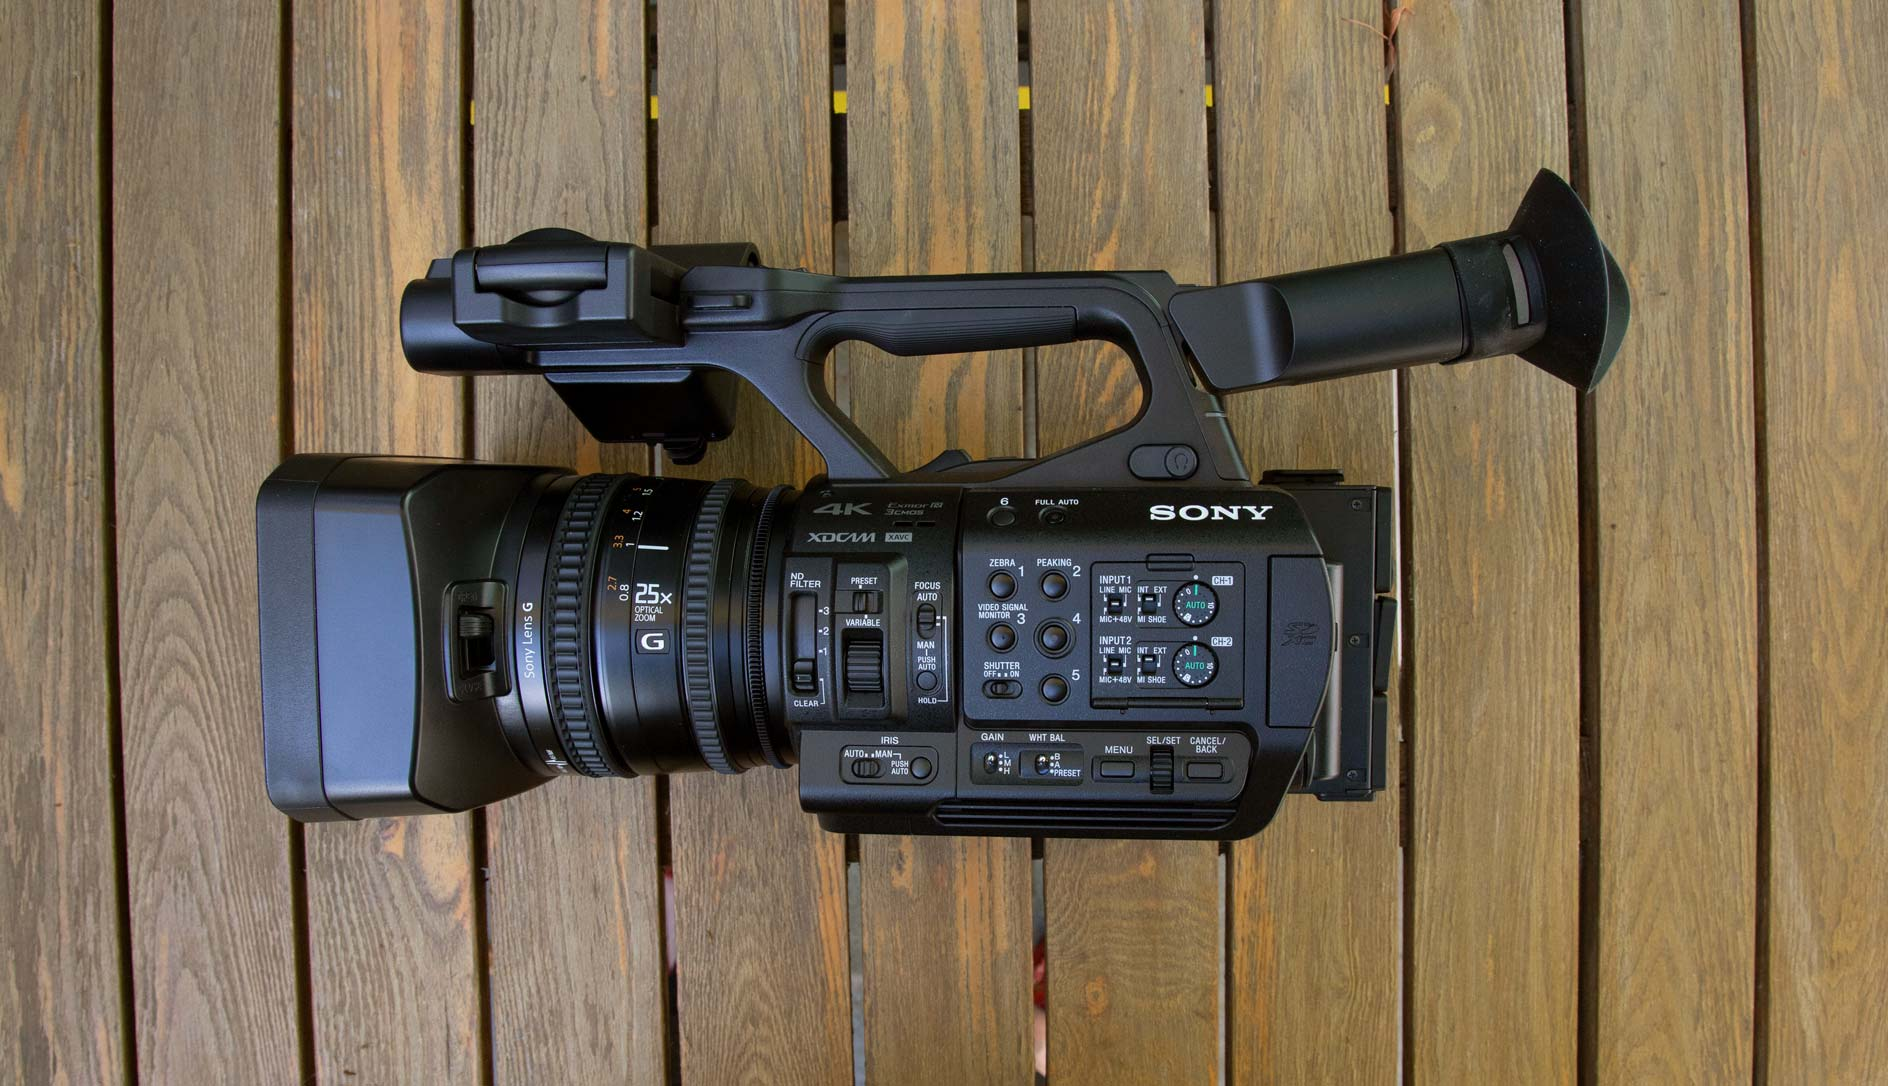 Sony PXW-Z190 Review: All the control you need - Videomaker